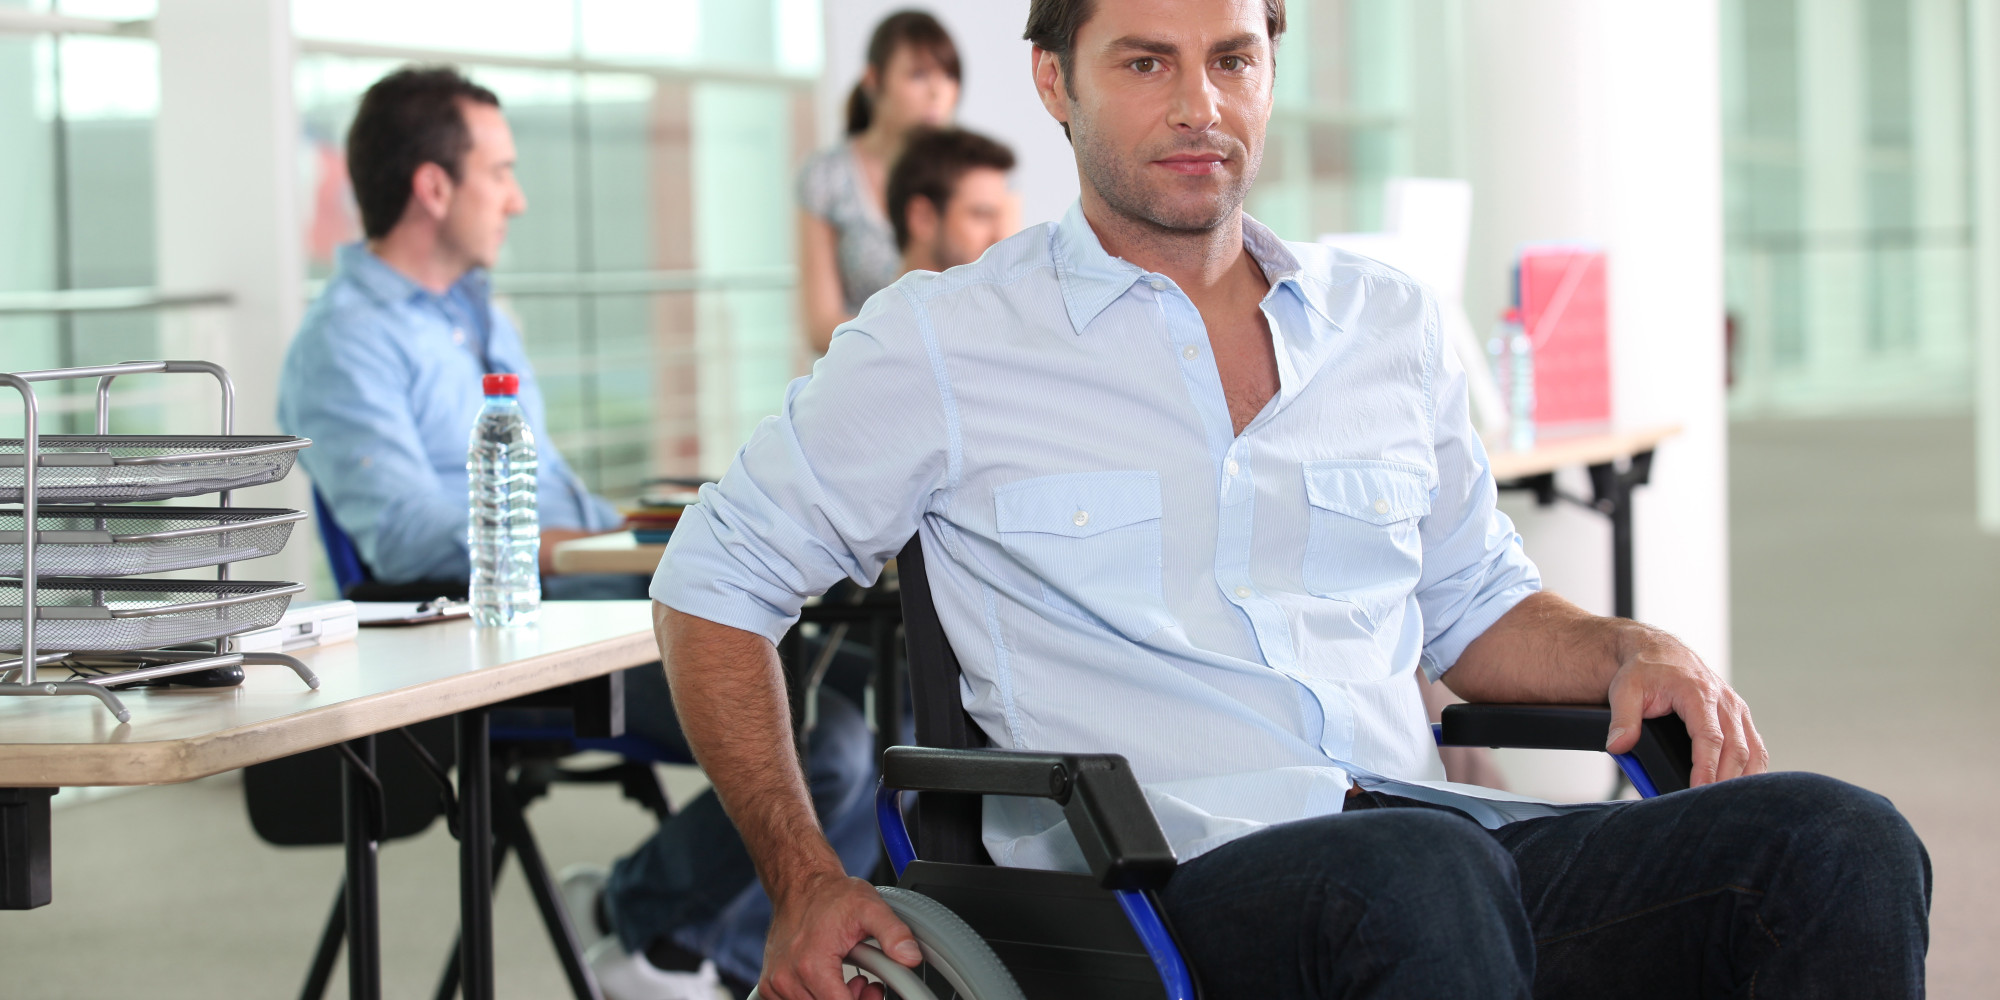 OPM Disability Retirement: The Federal Workplace (Part 1)